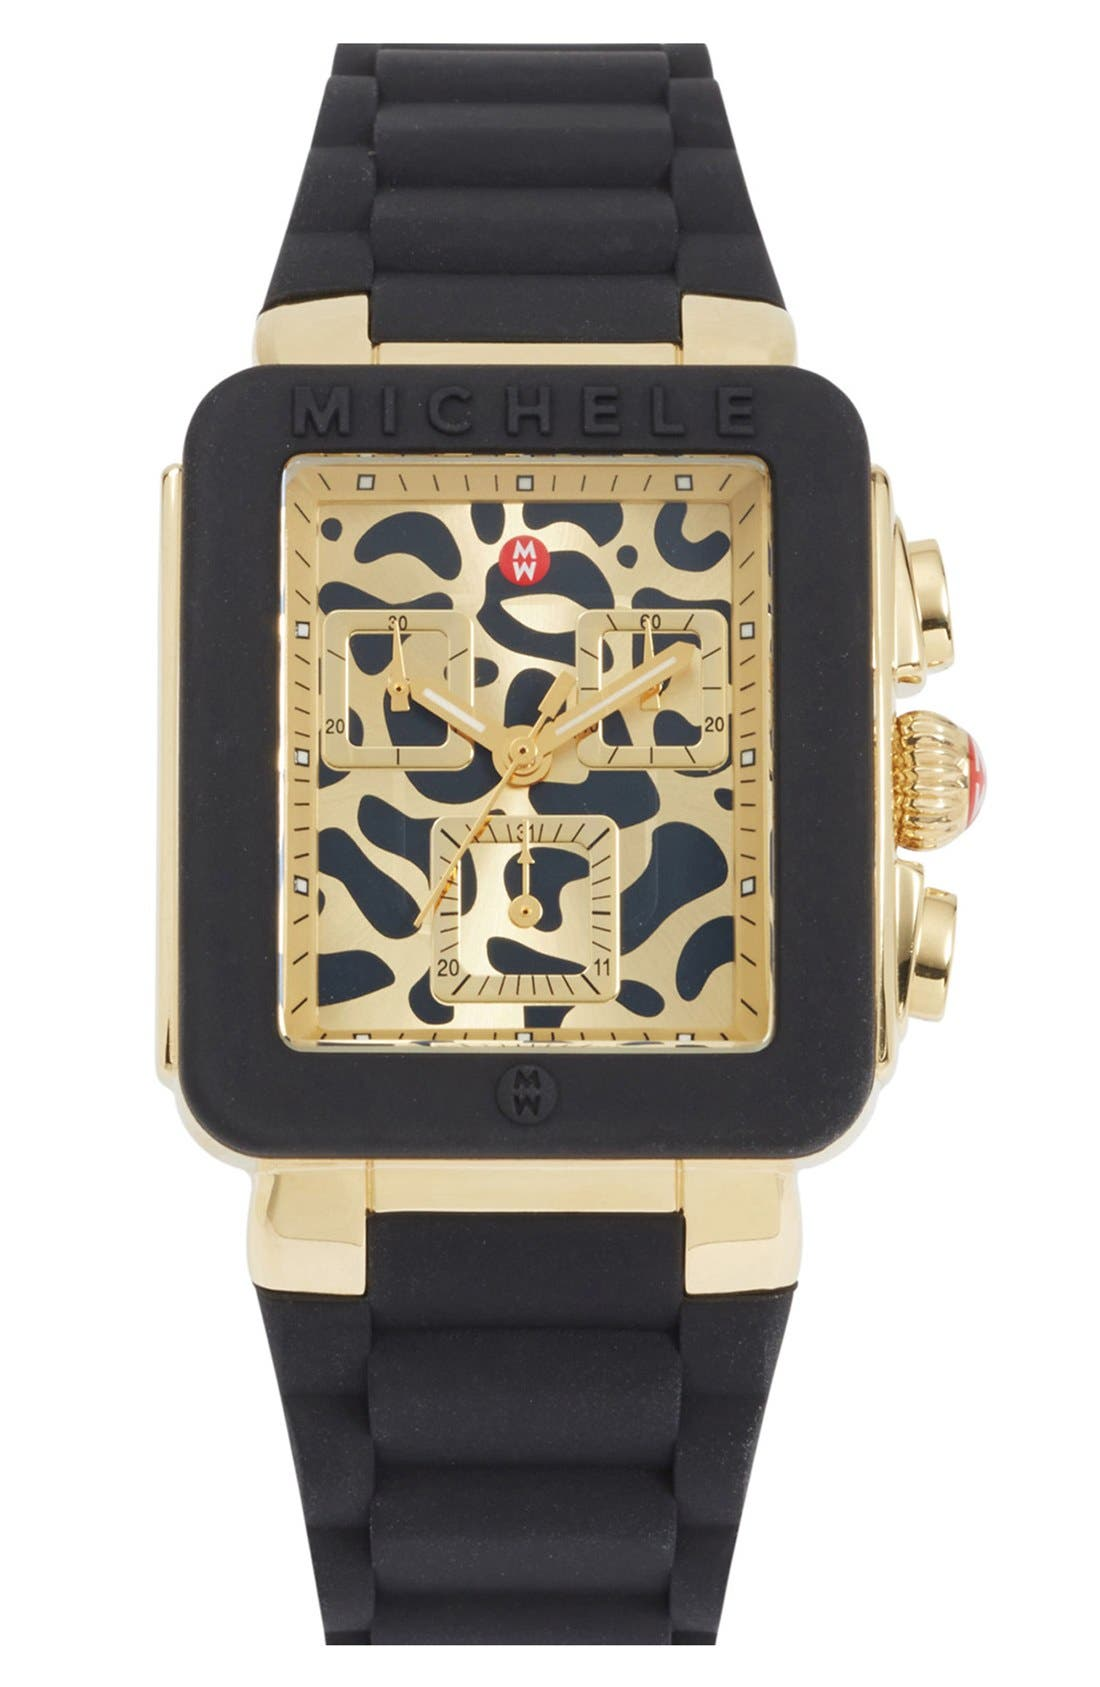 Main Image - MICHELE 'Park Jelly Bean' Tiger Dial Watch, 33mm x 36mm